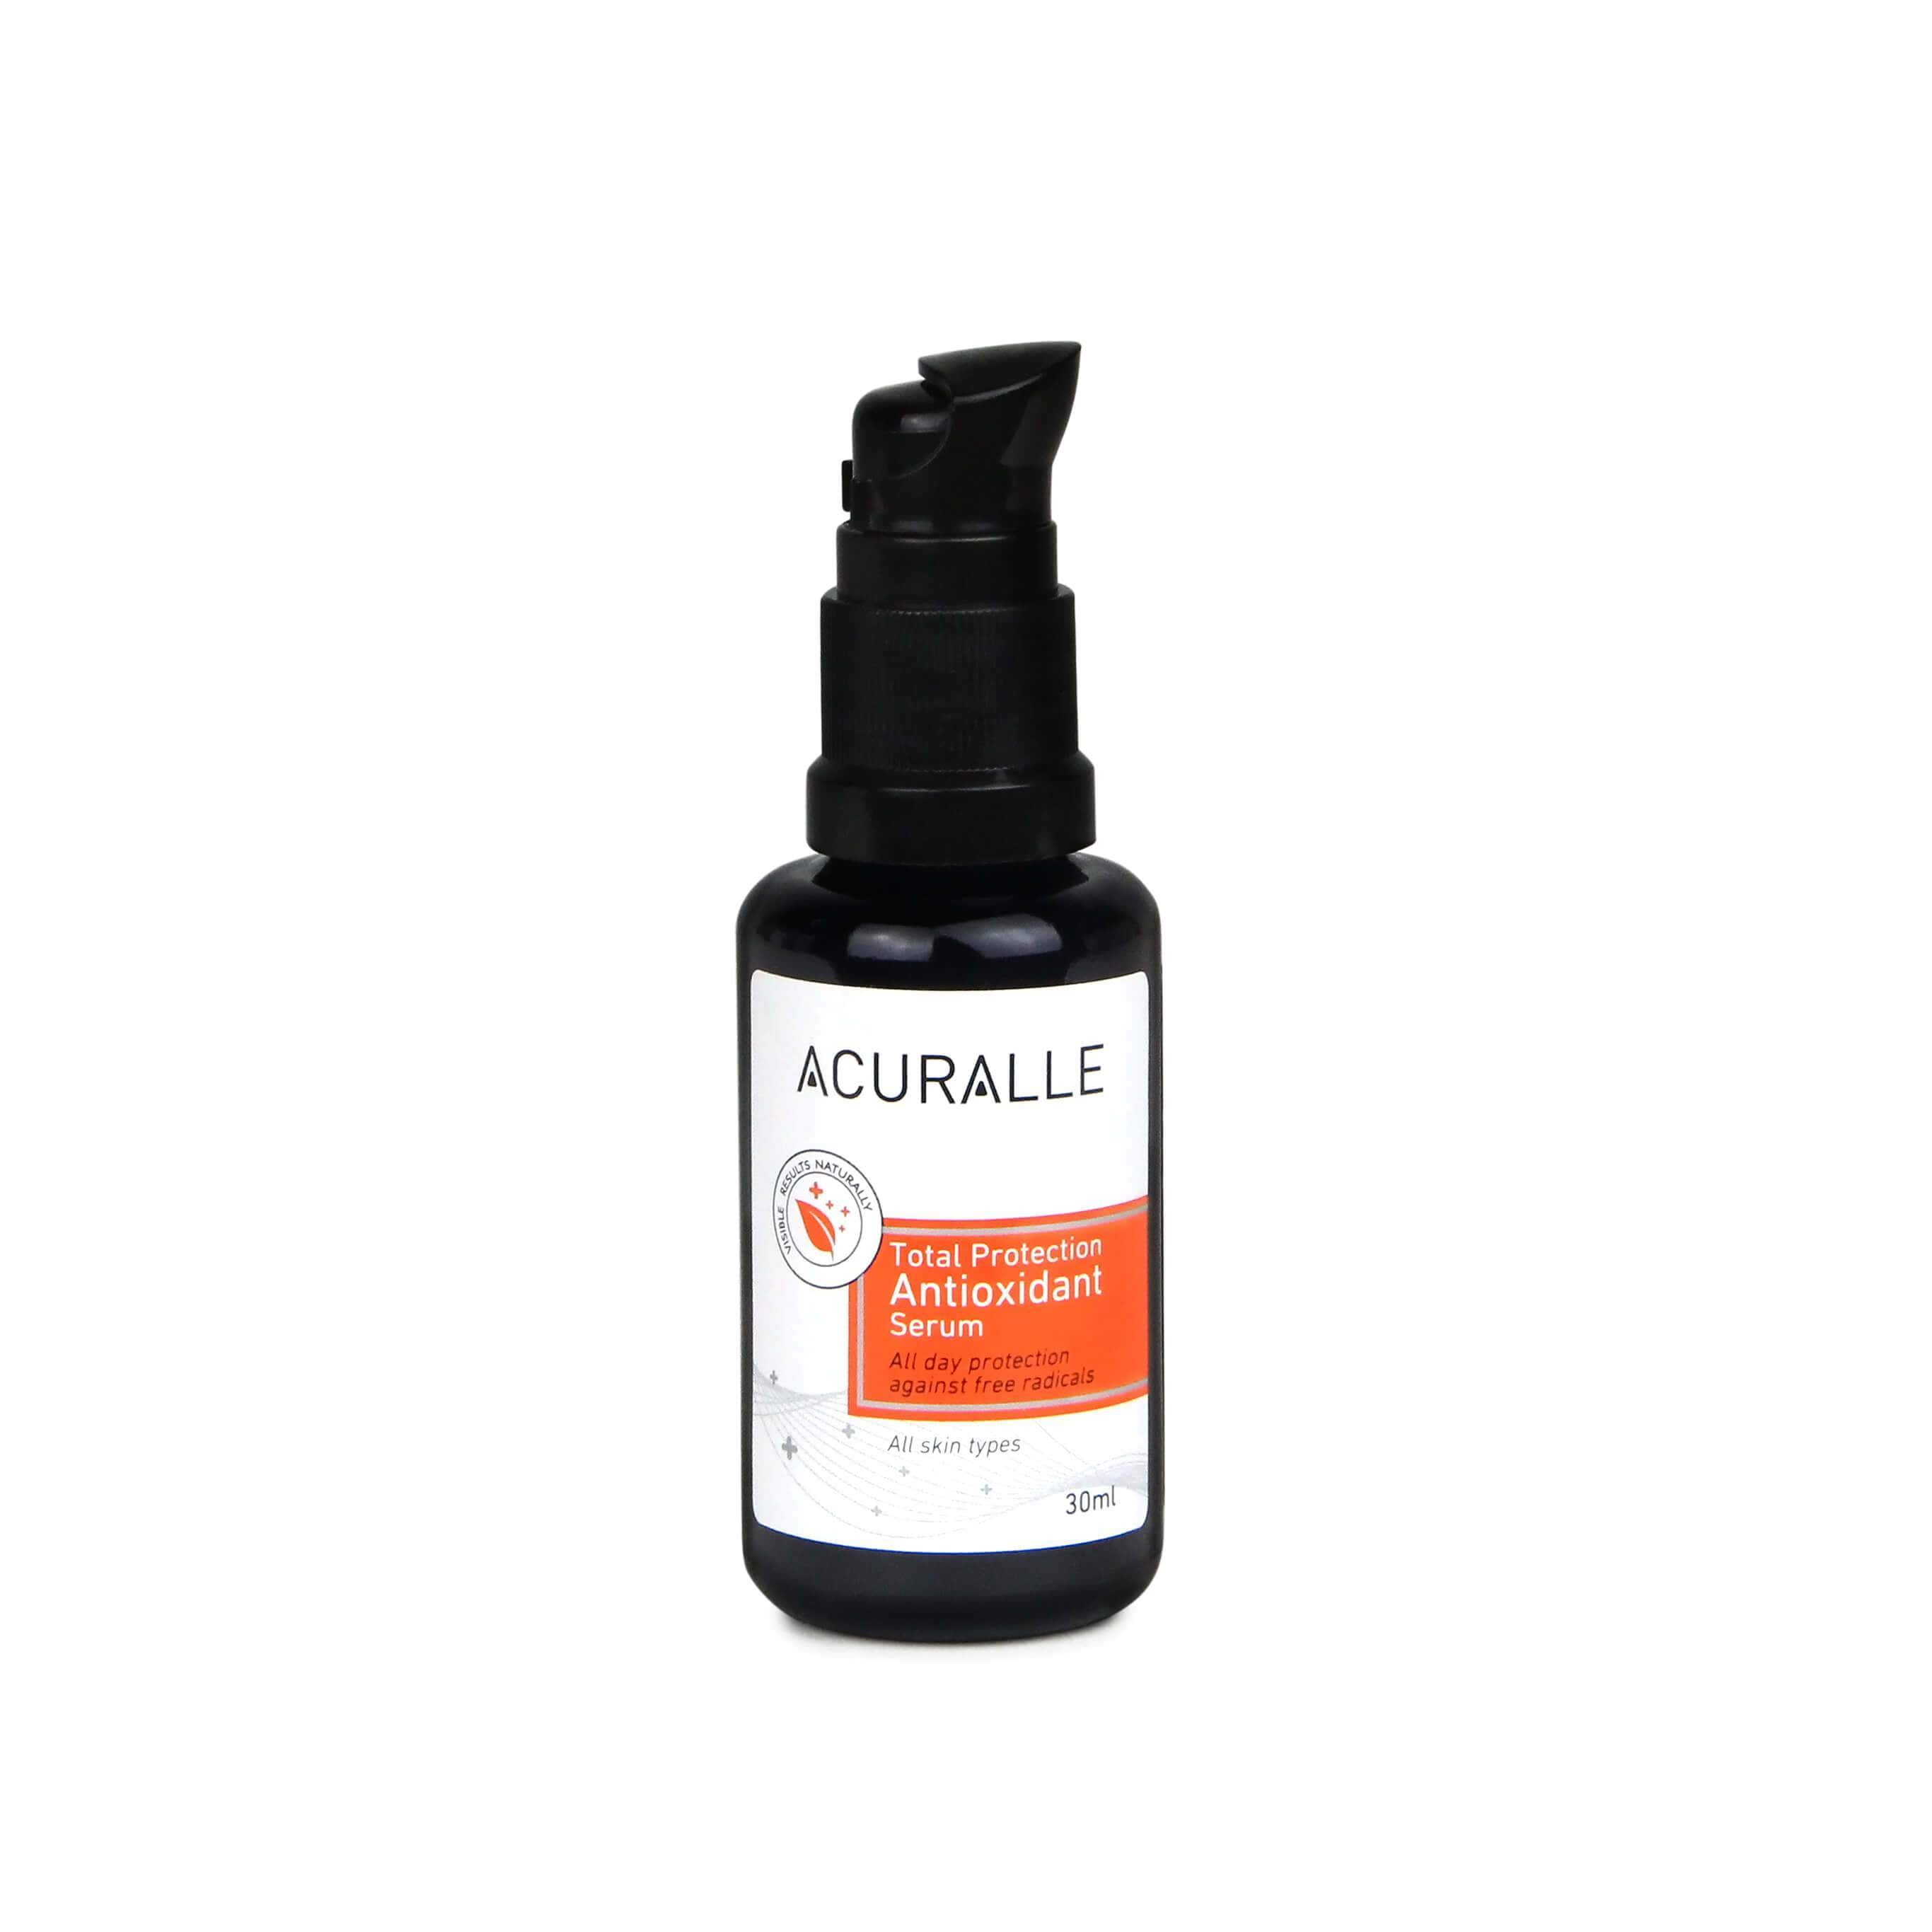 Acuralle Total Protection Antioxidant Serum